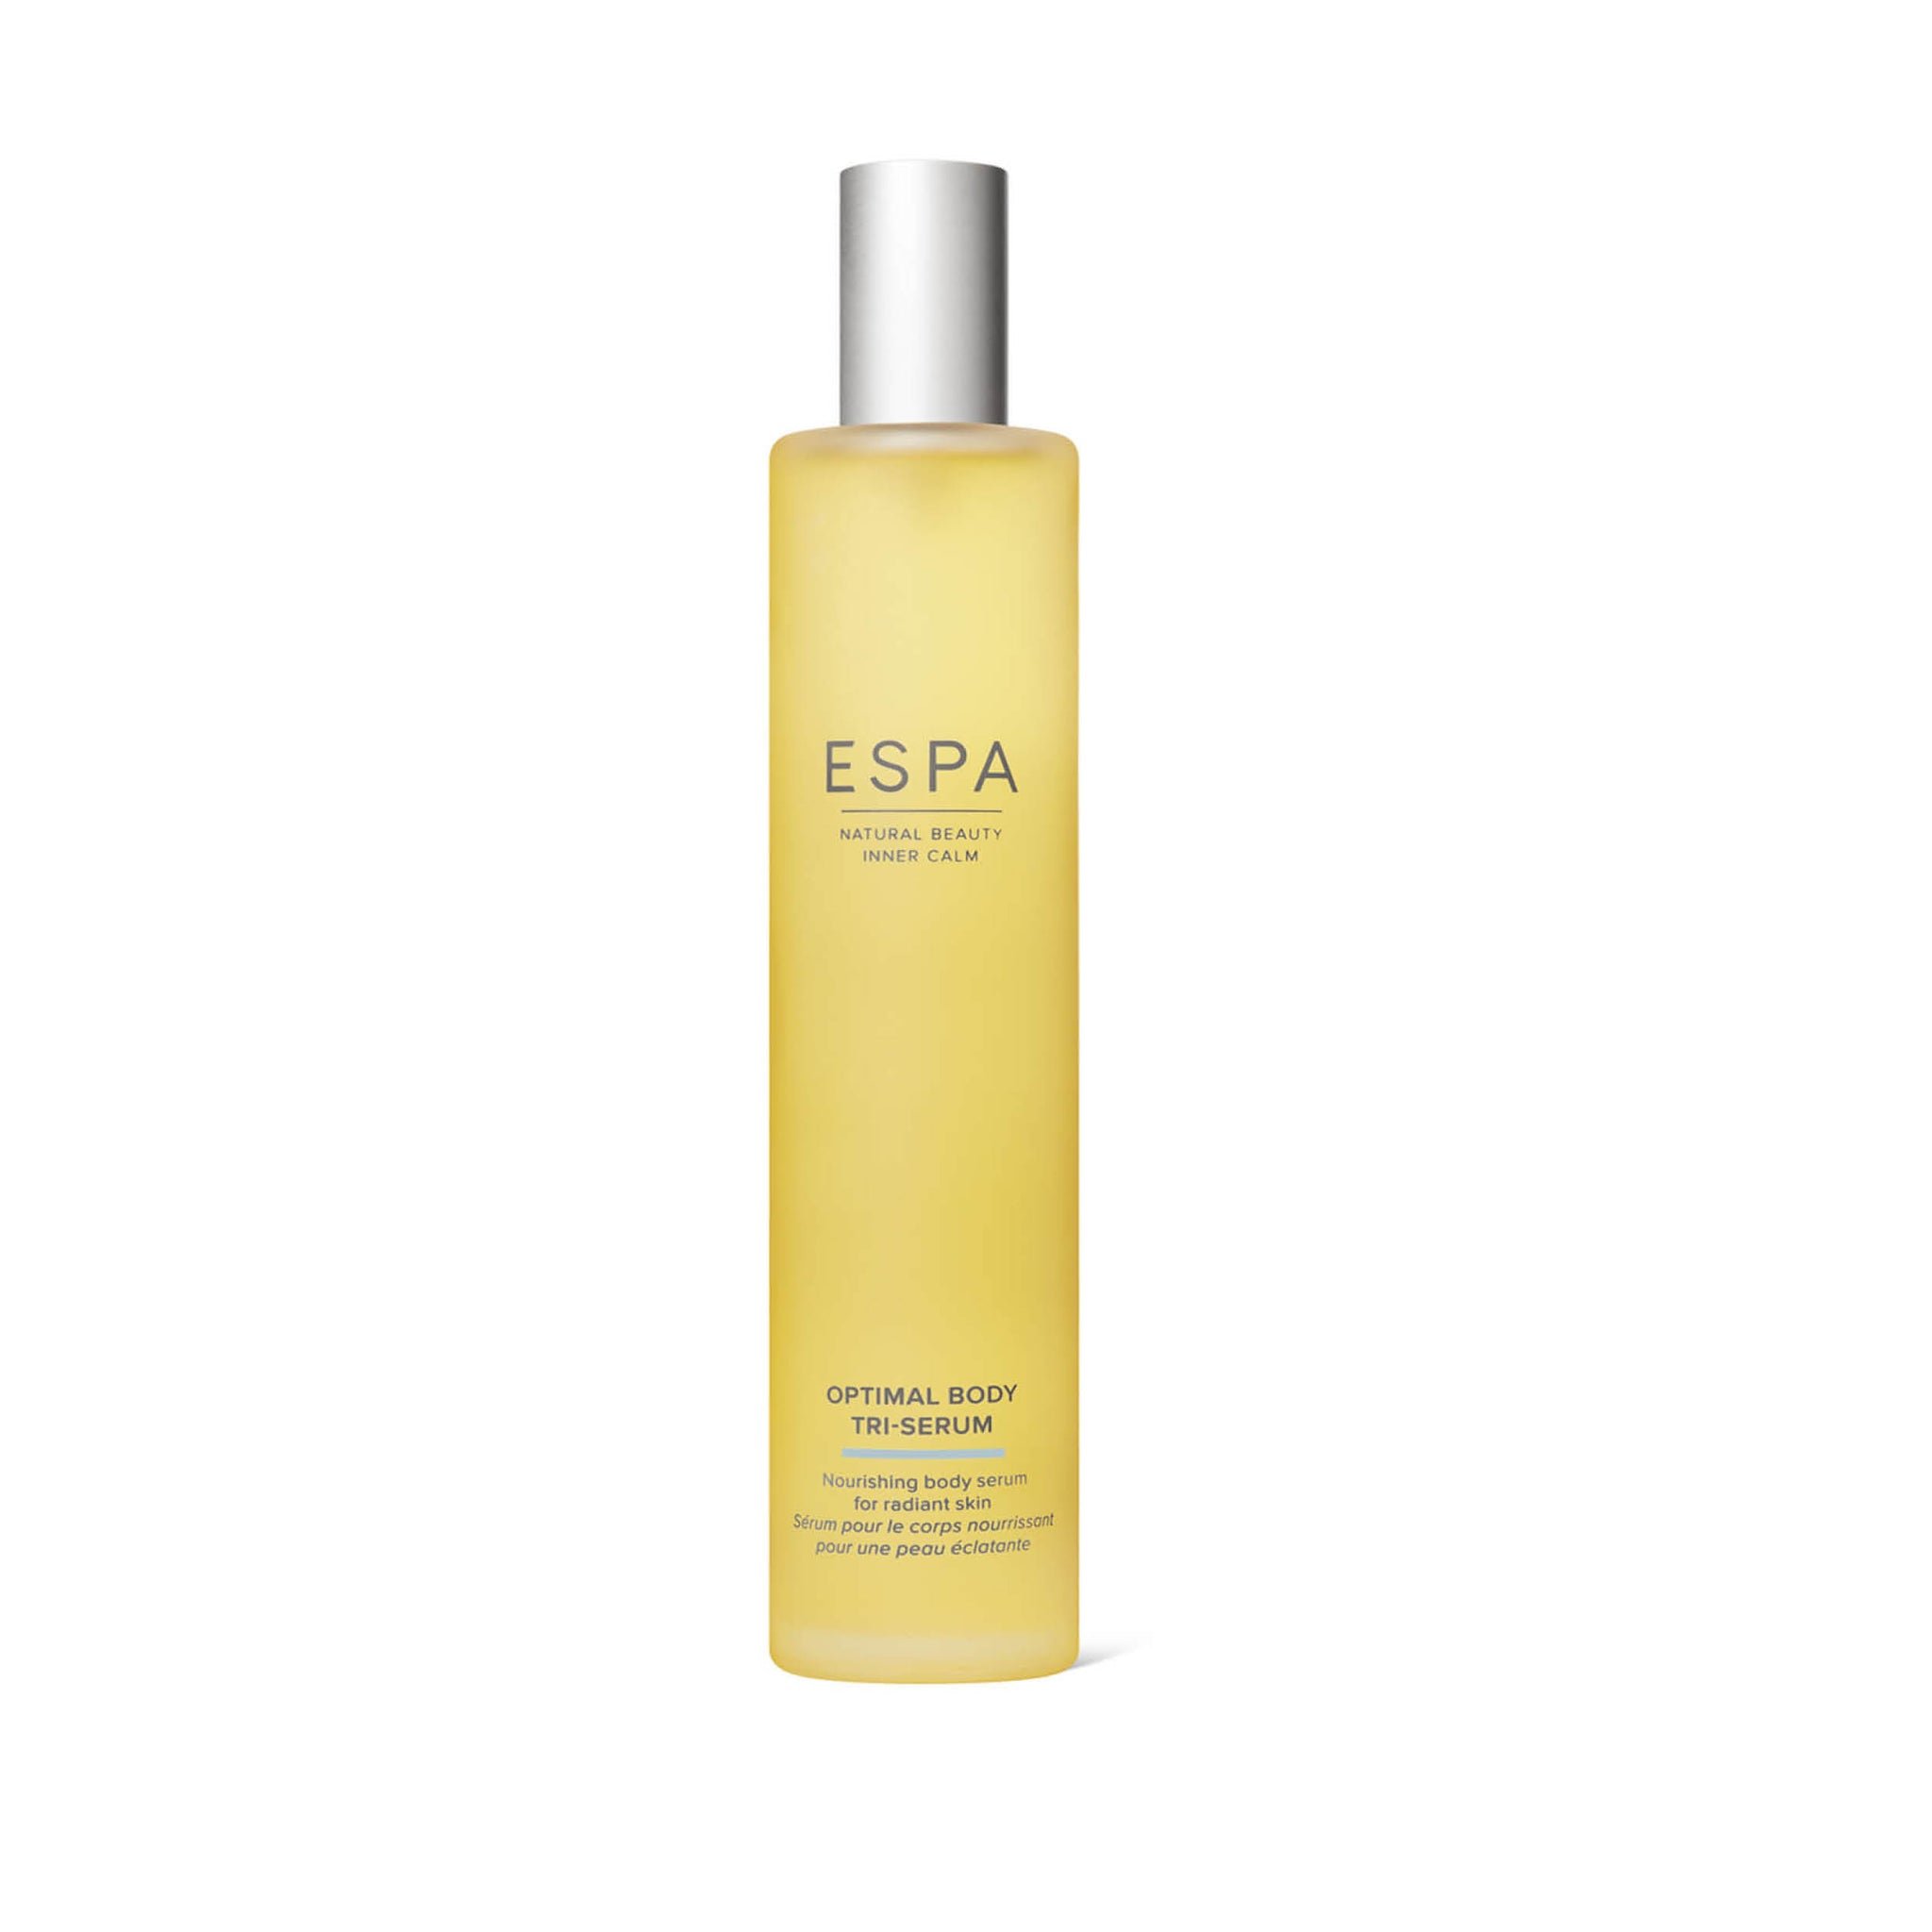 ESPA Optimal Body Tri-Serum